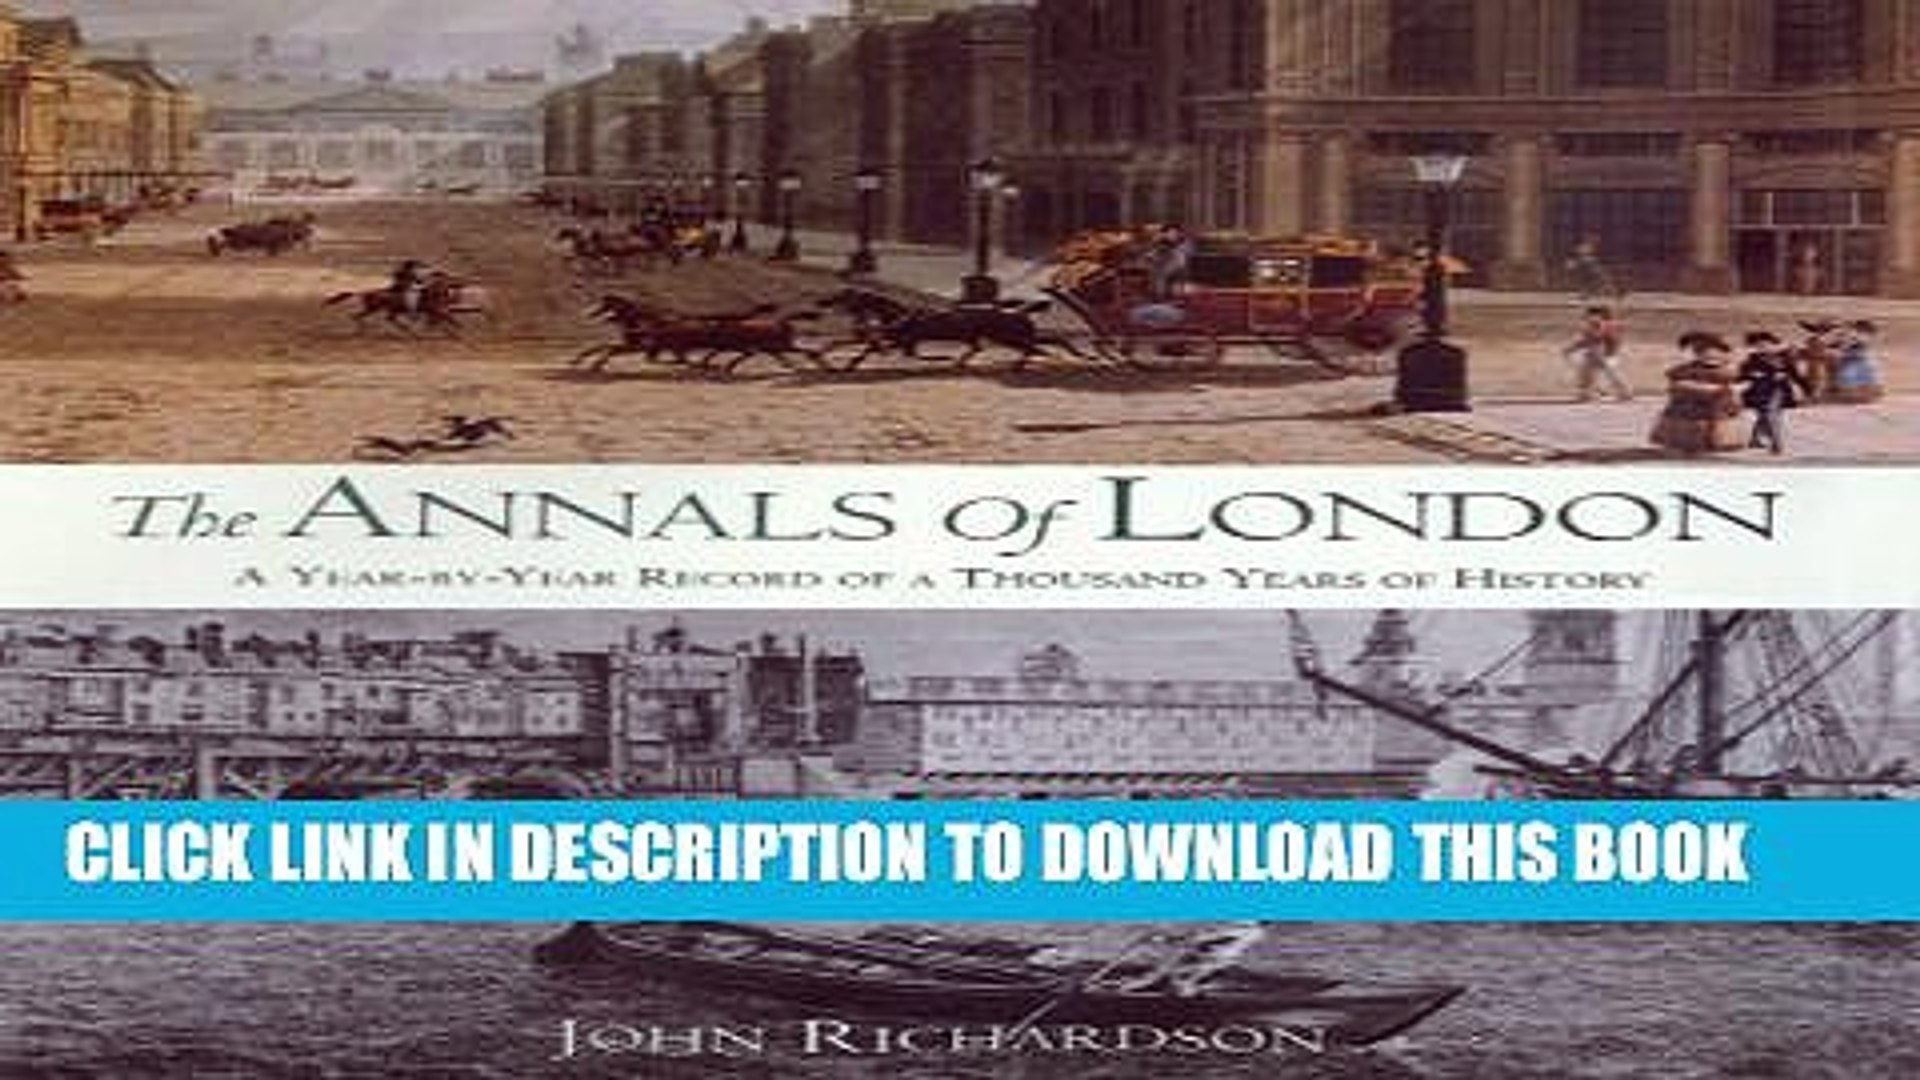 [PDF] The Annals of London: A Year-by-Year Record of a Thousand Years of History Popular Online